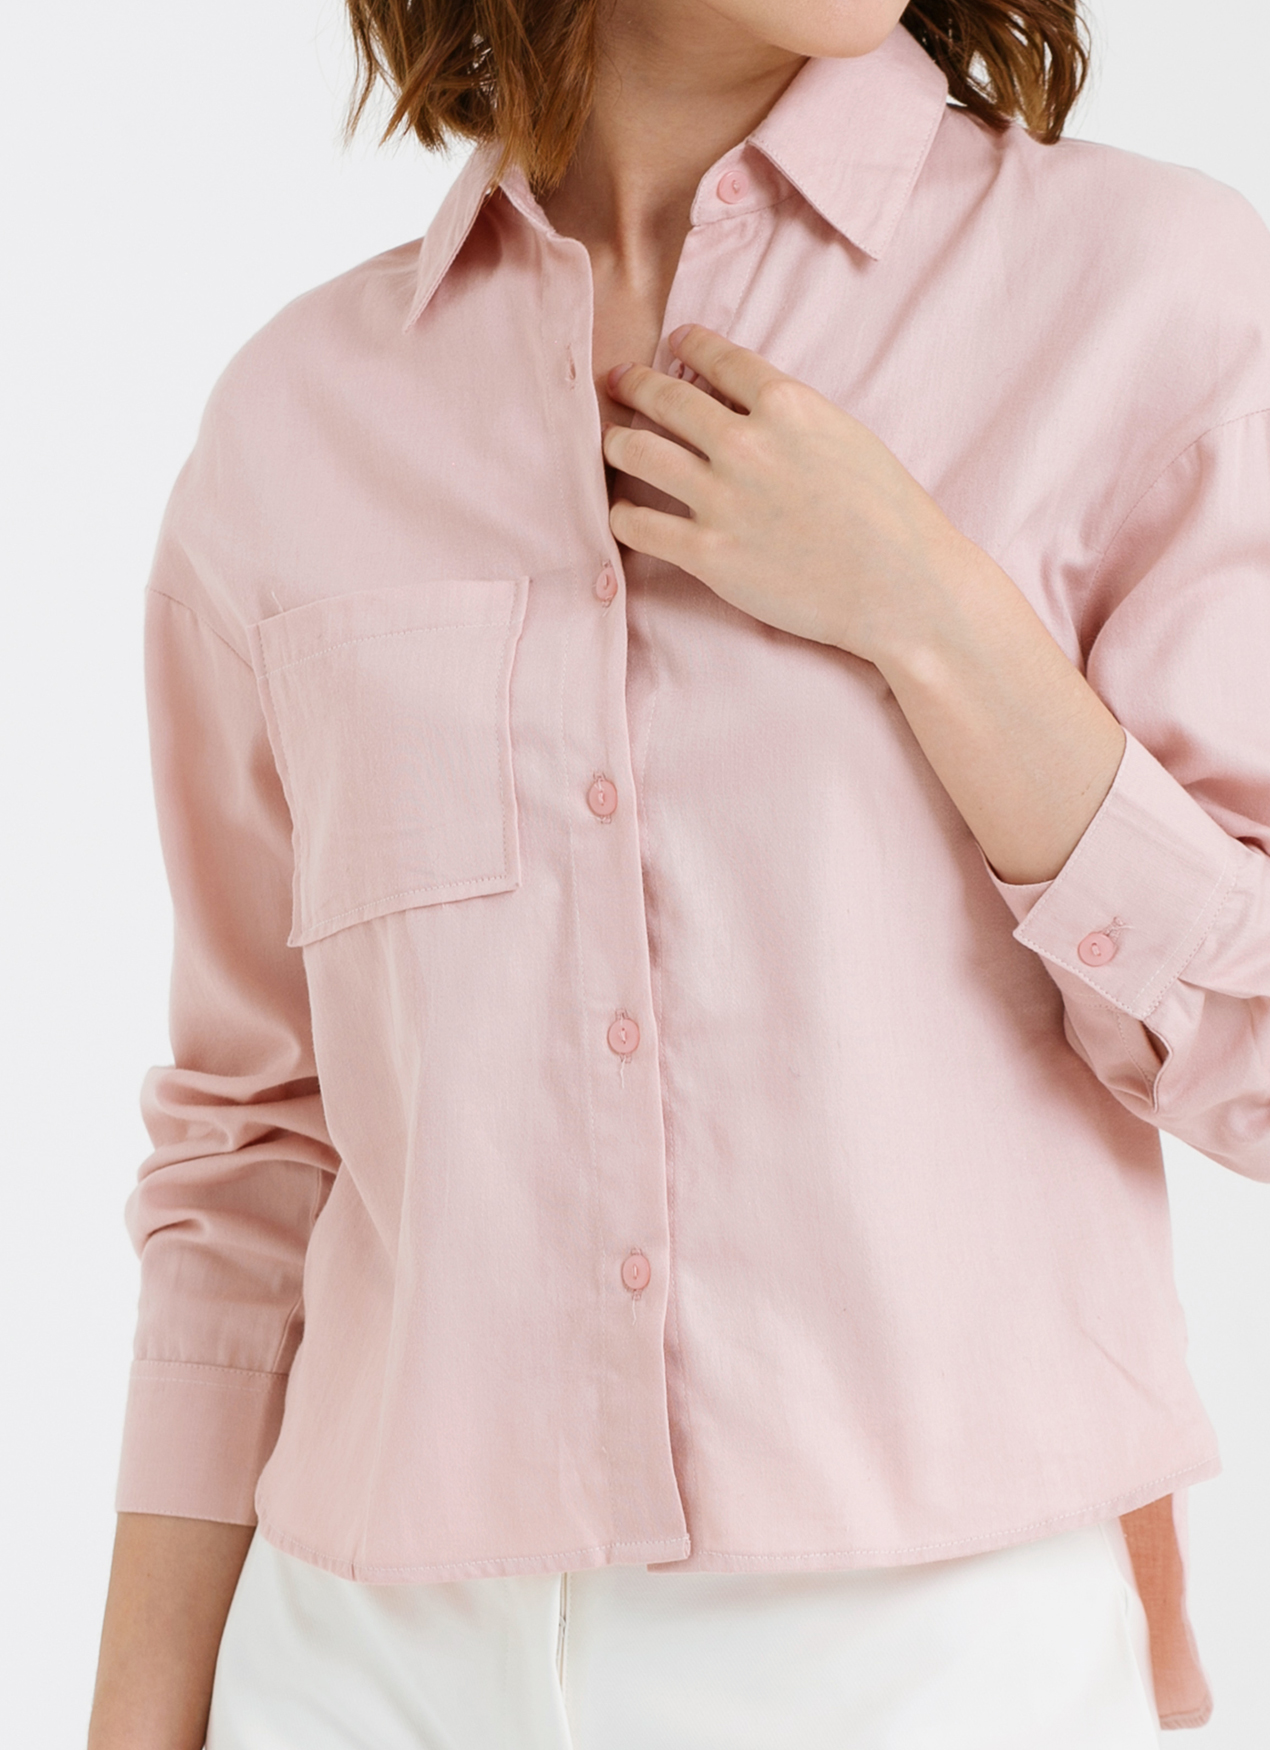 CLOTH INC High-Low Single Pocket Shirt - Pink